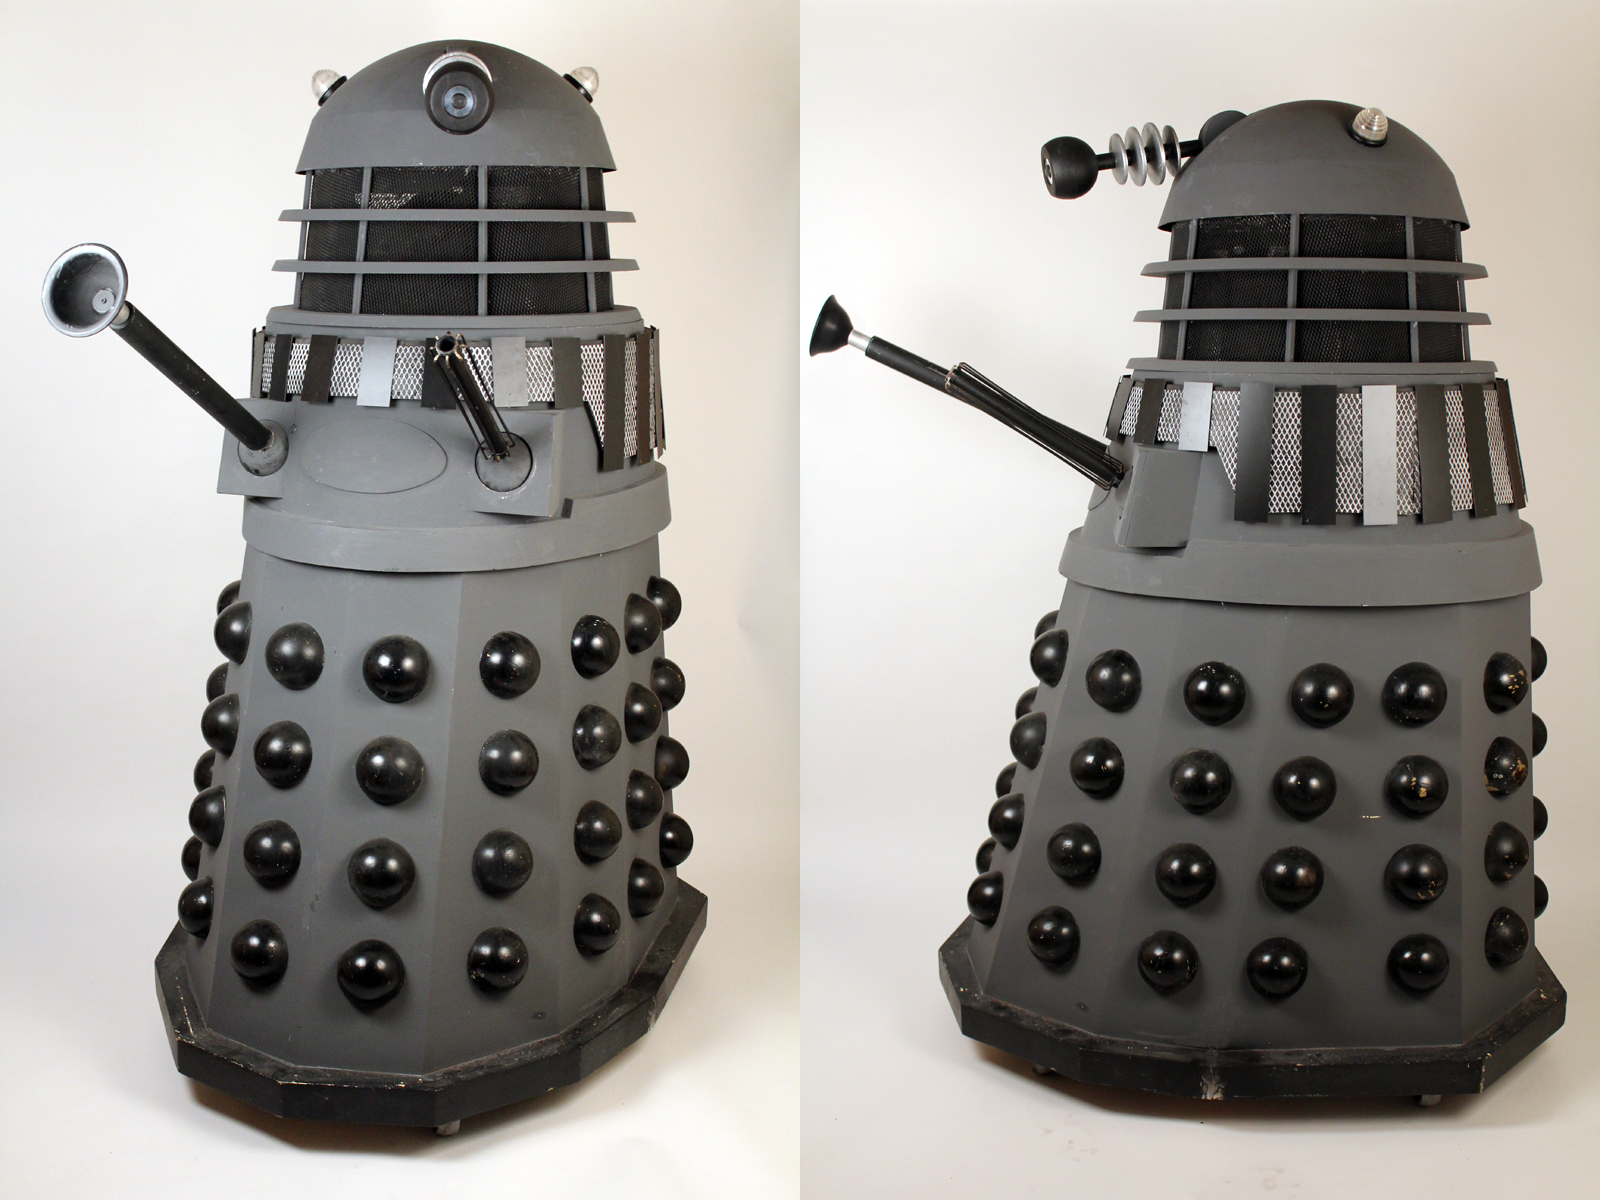 The prop gallery doctor who original dalek - Doctor who dalek pics ...